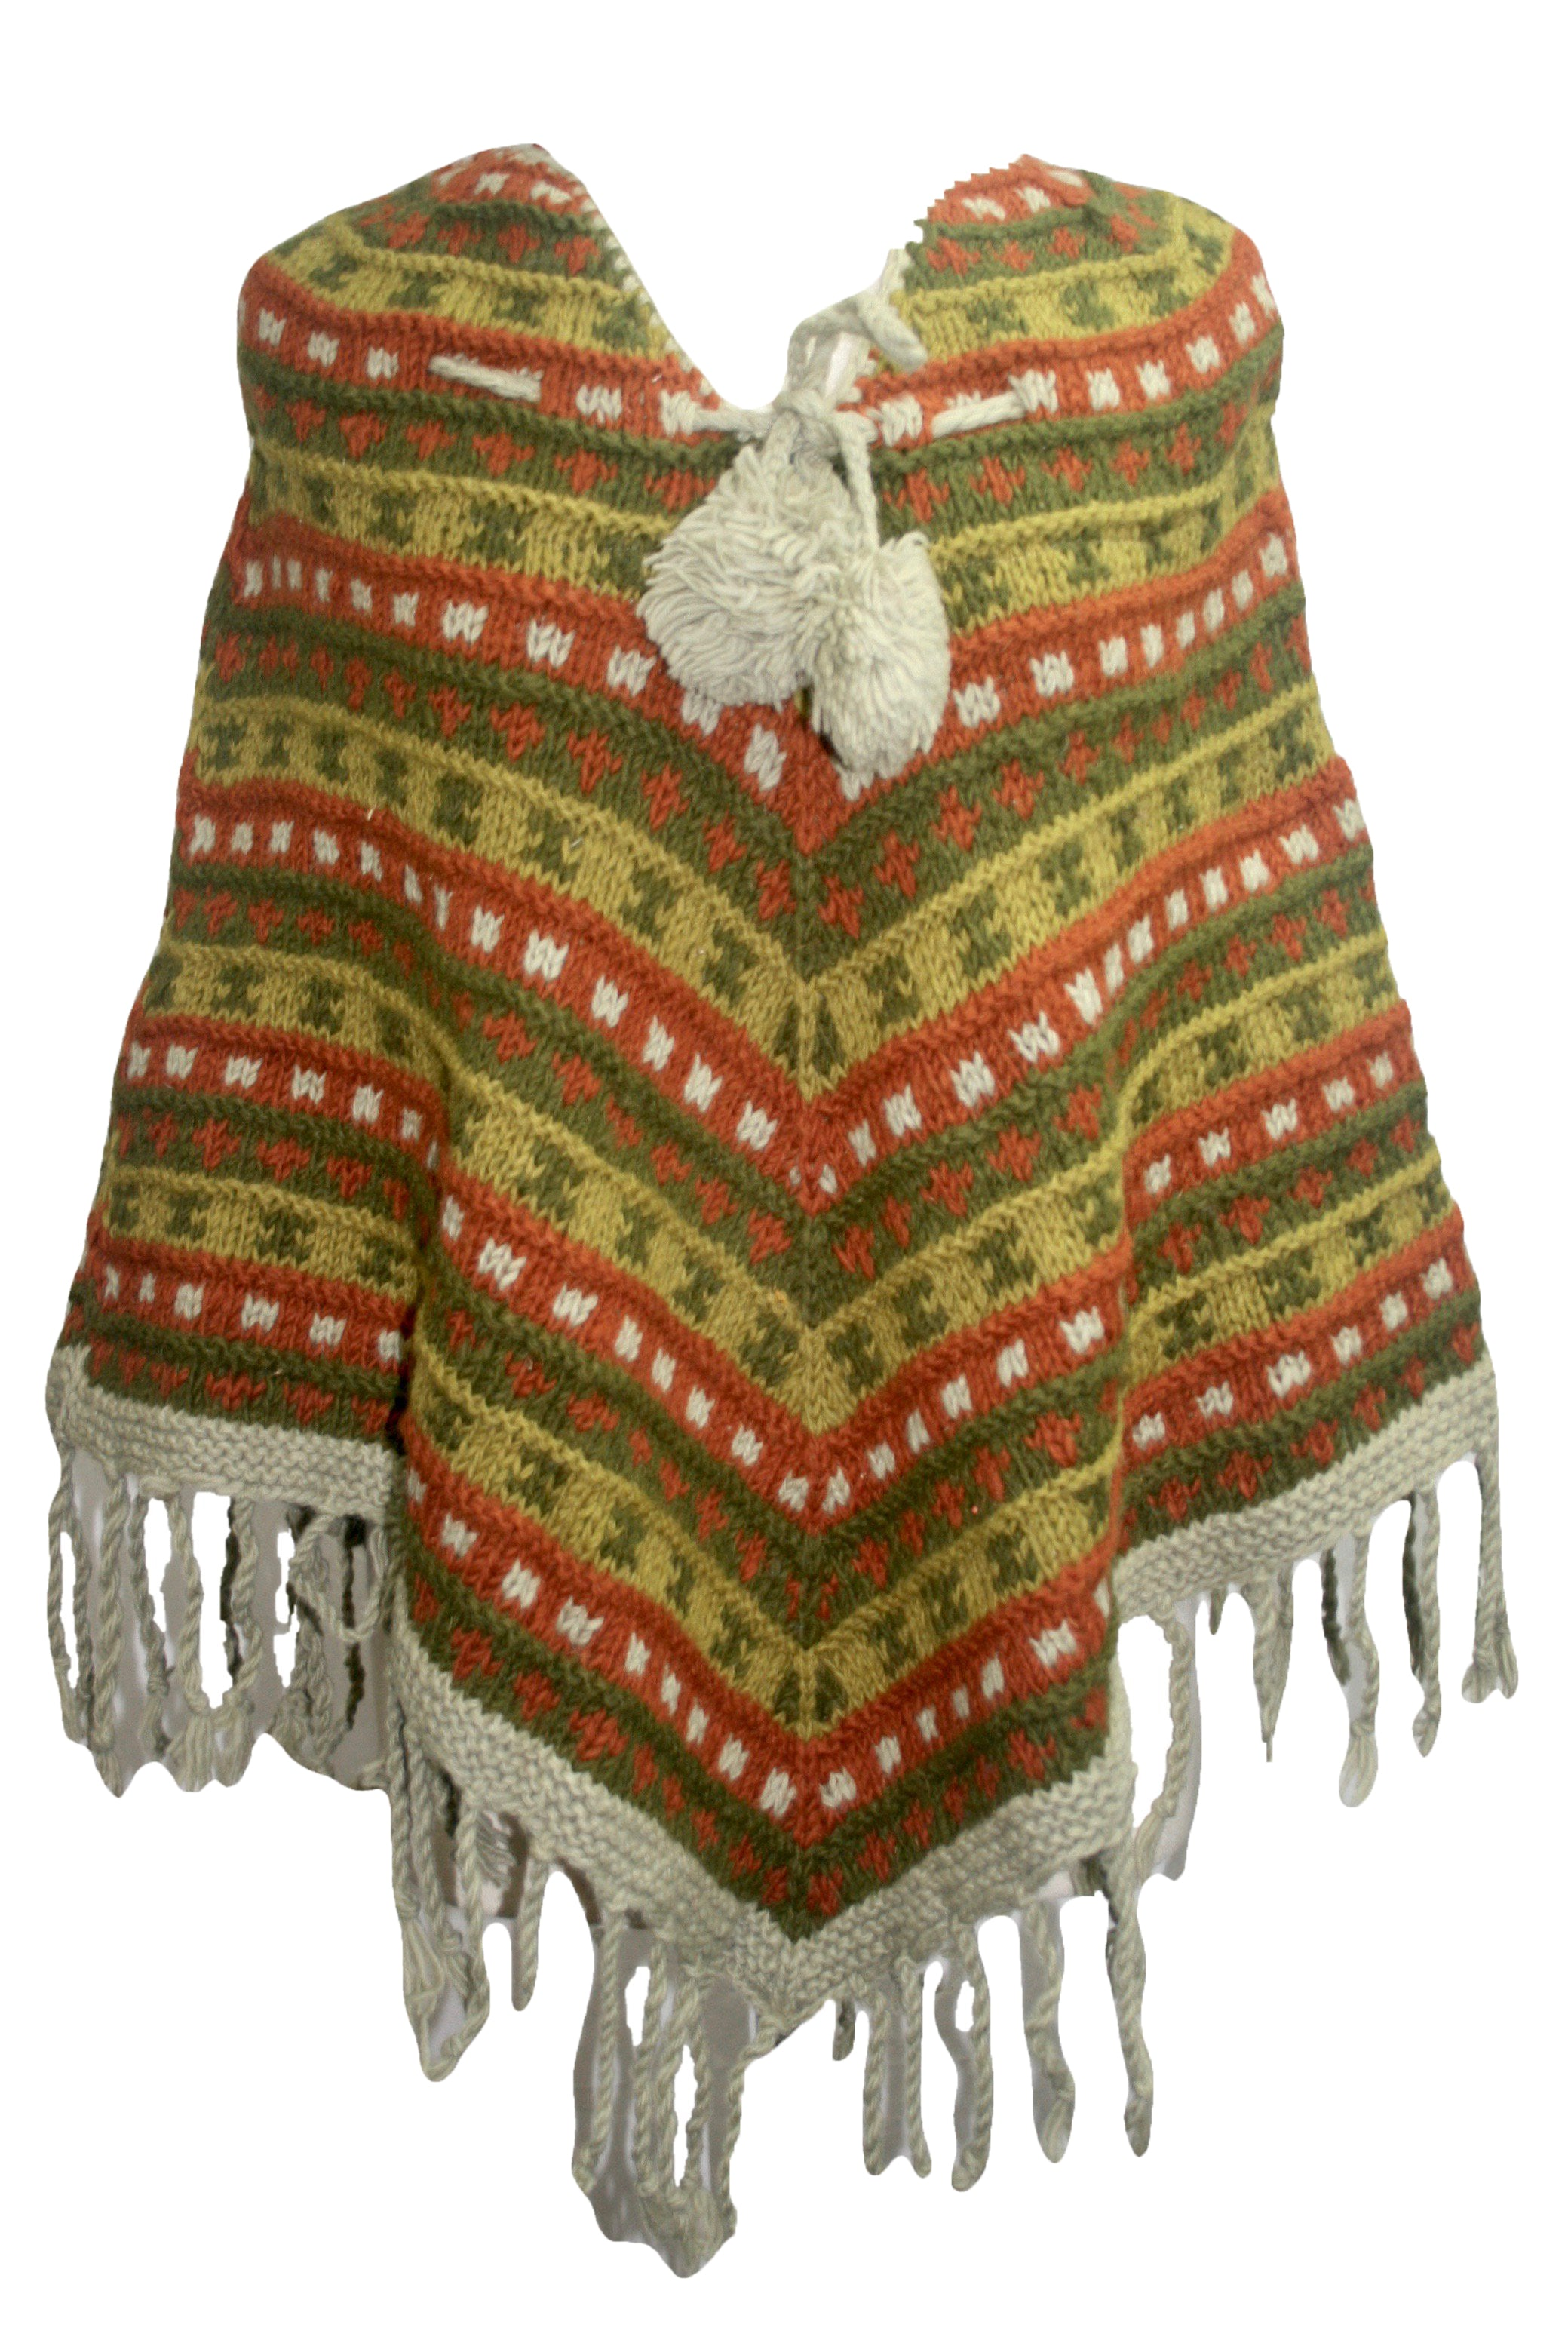 PN 200 Himalayan Thick Sheep Wool Hand Knitted Poncho - Agan Traders, PN 200 11